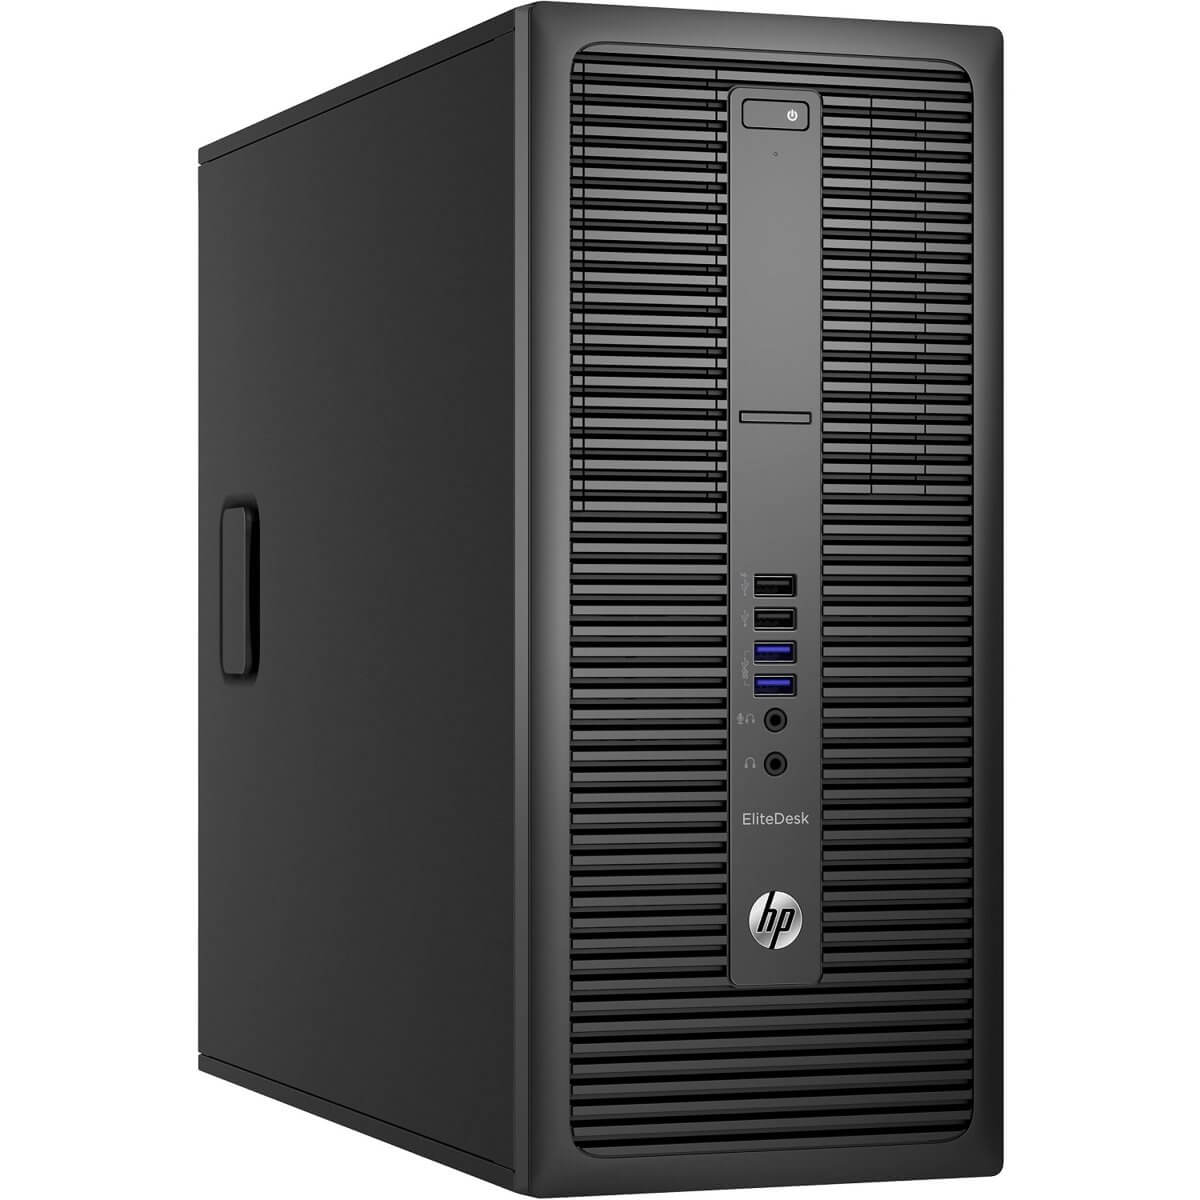 HP ELITEDESK 800 G2 TOWER I5-6400 2.7 / 8192 MB DDR4 / 256 GB SSD + 500 GB / WINDOWS 10 PRO